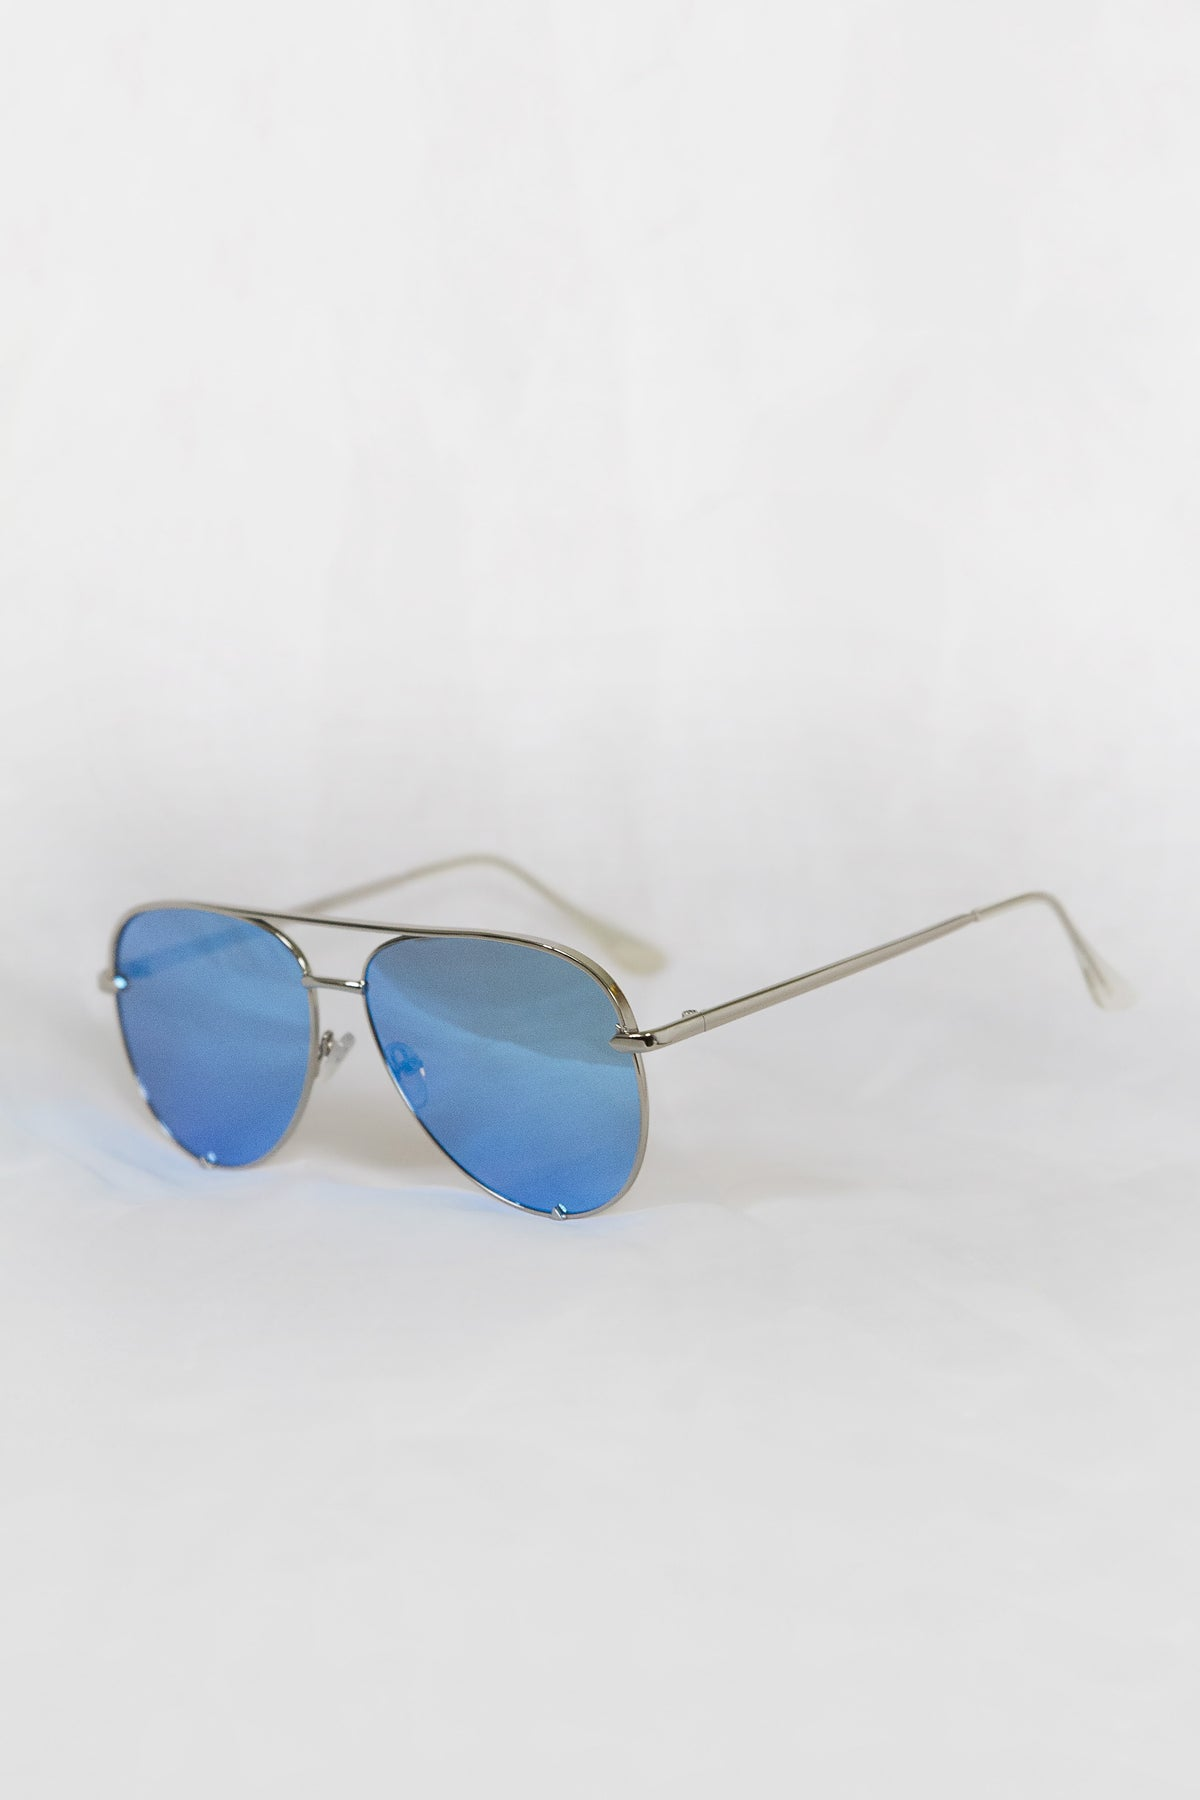 Foxy Silver Sunglasses - Blue Lenses - House of W